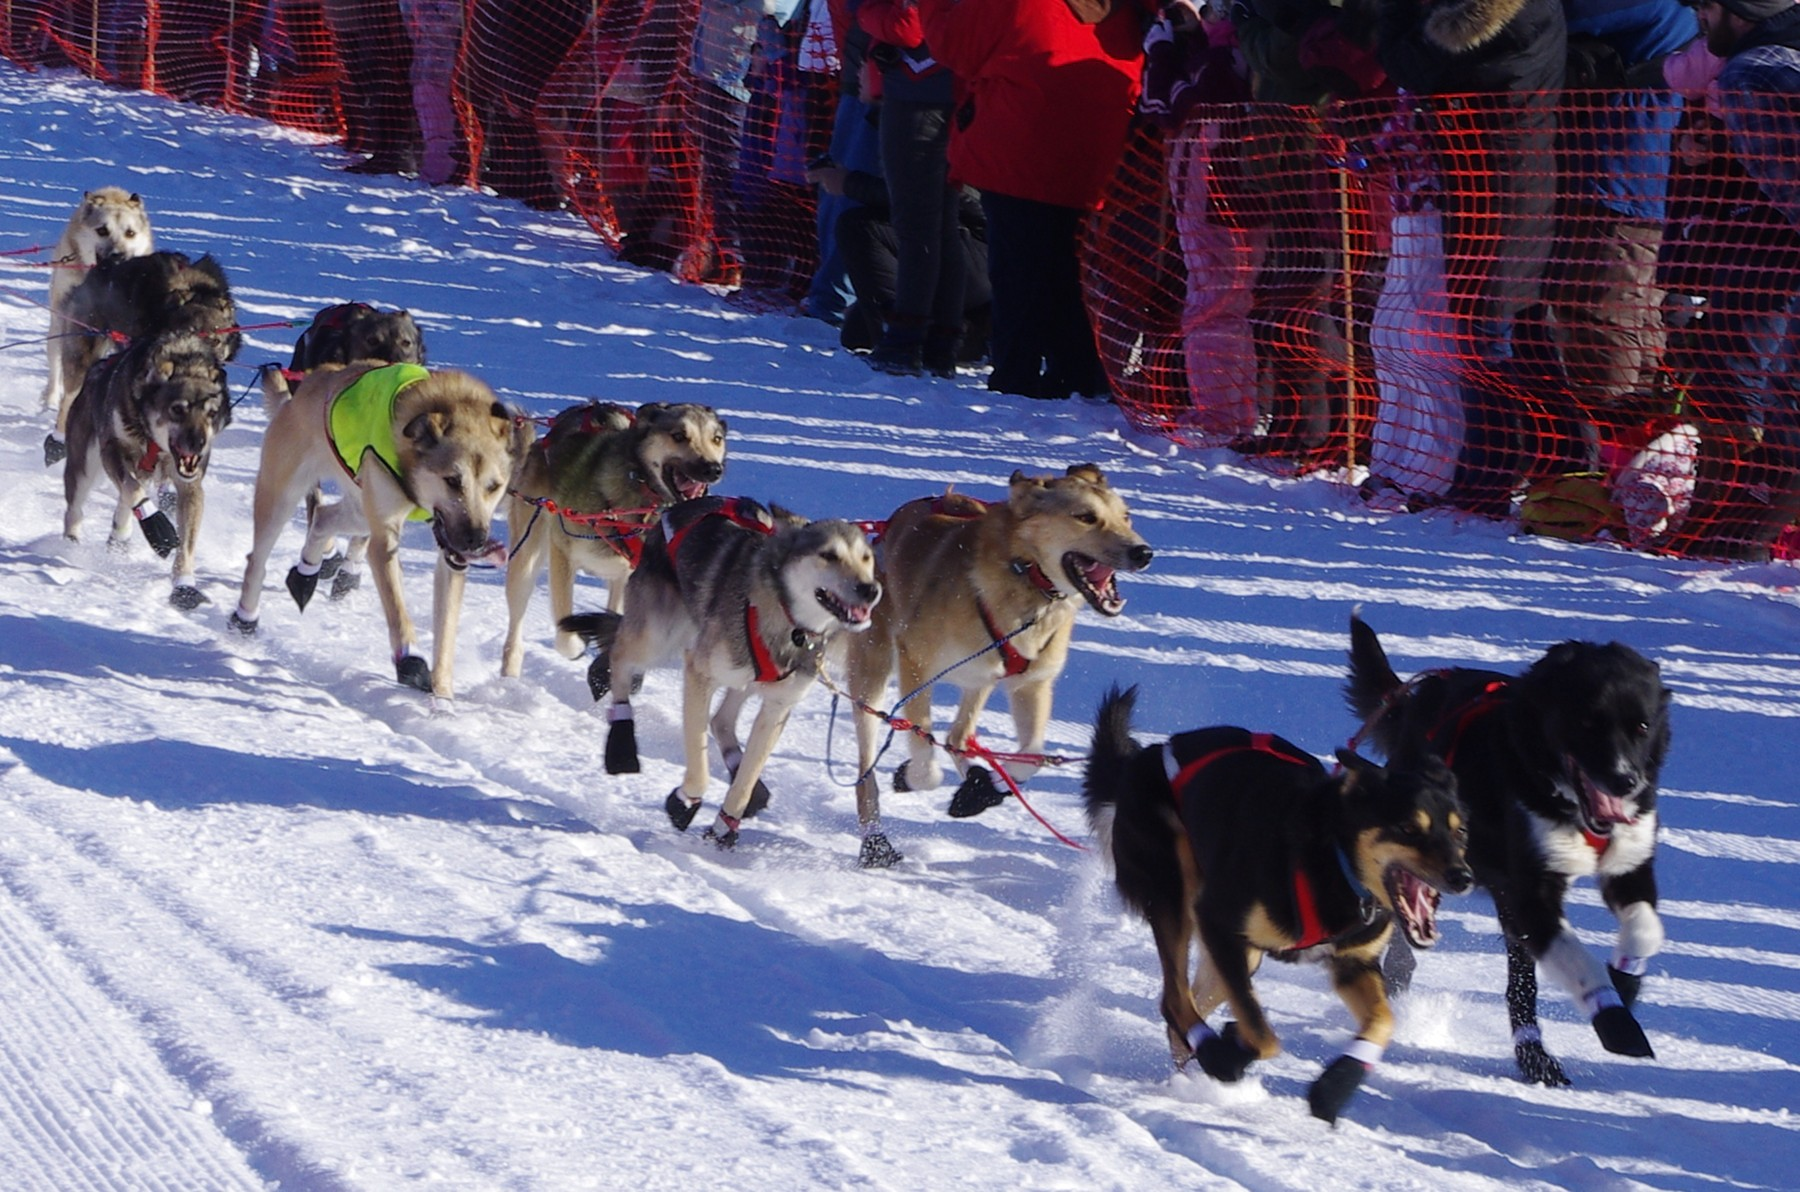 2011 Iditarod Race - Sled dogs, Team 4.